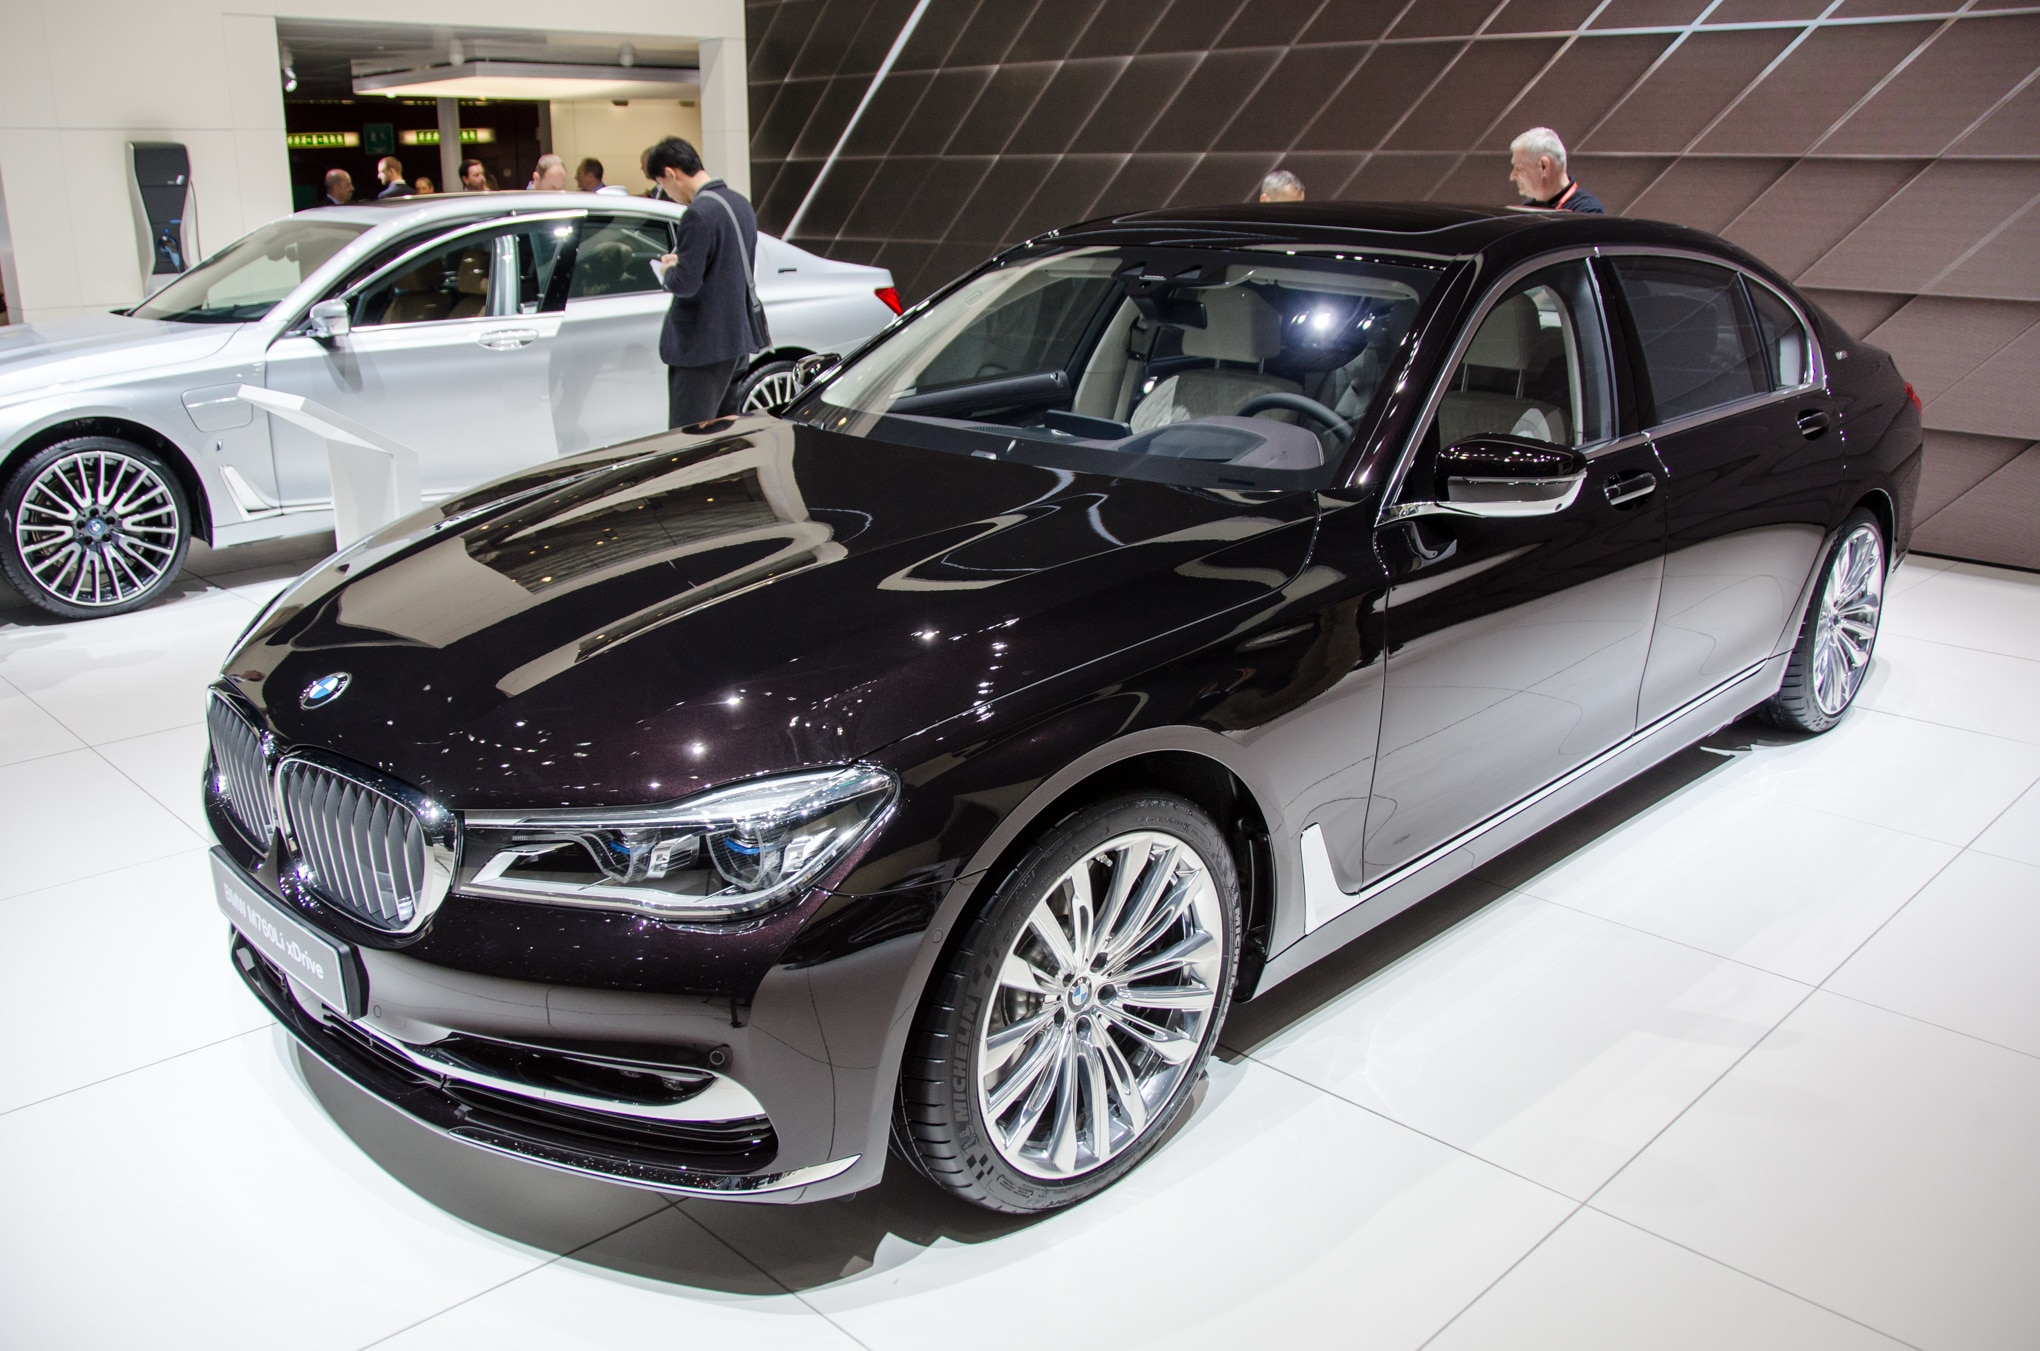 2017 Bmw M760i Xdrive Is A 12 Cylinder High Performance